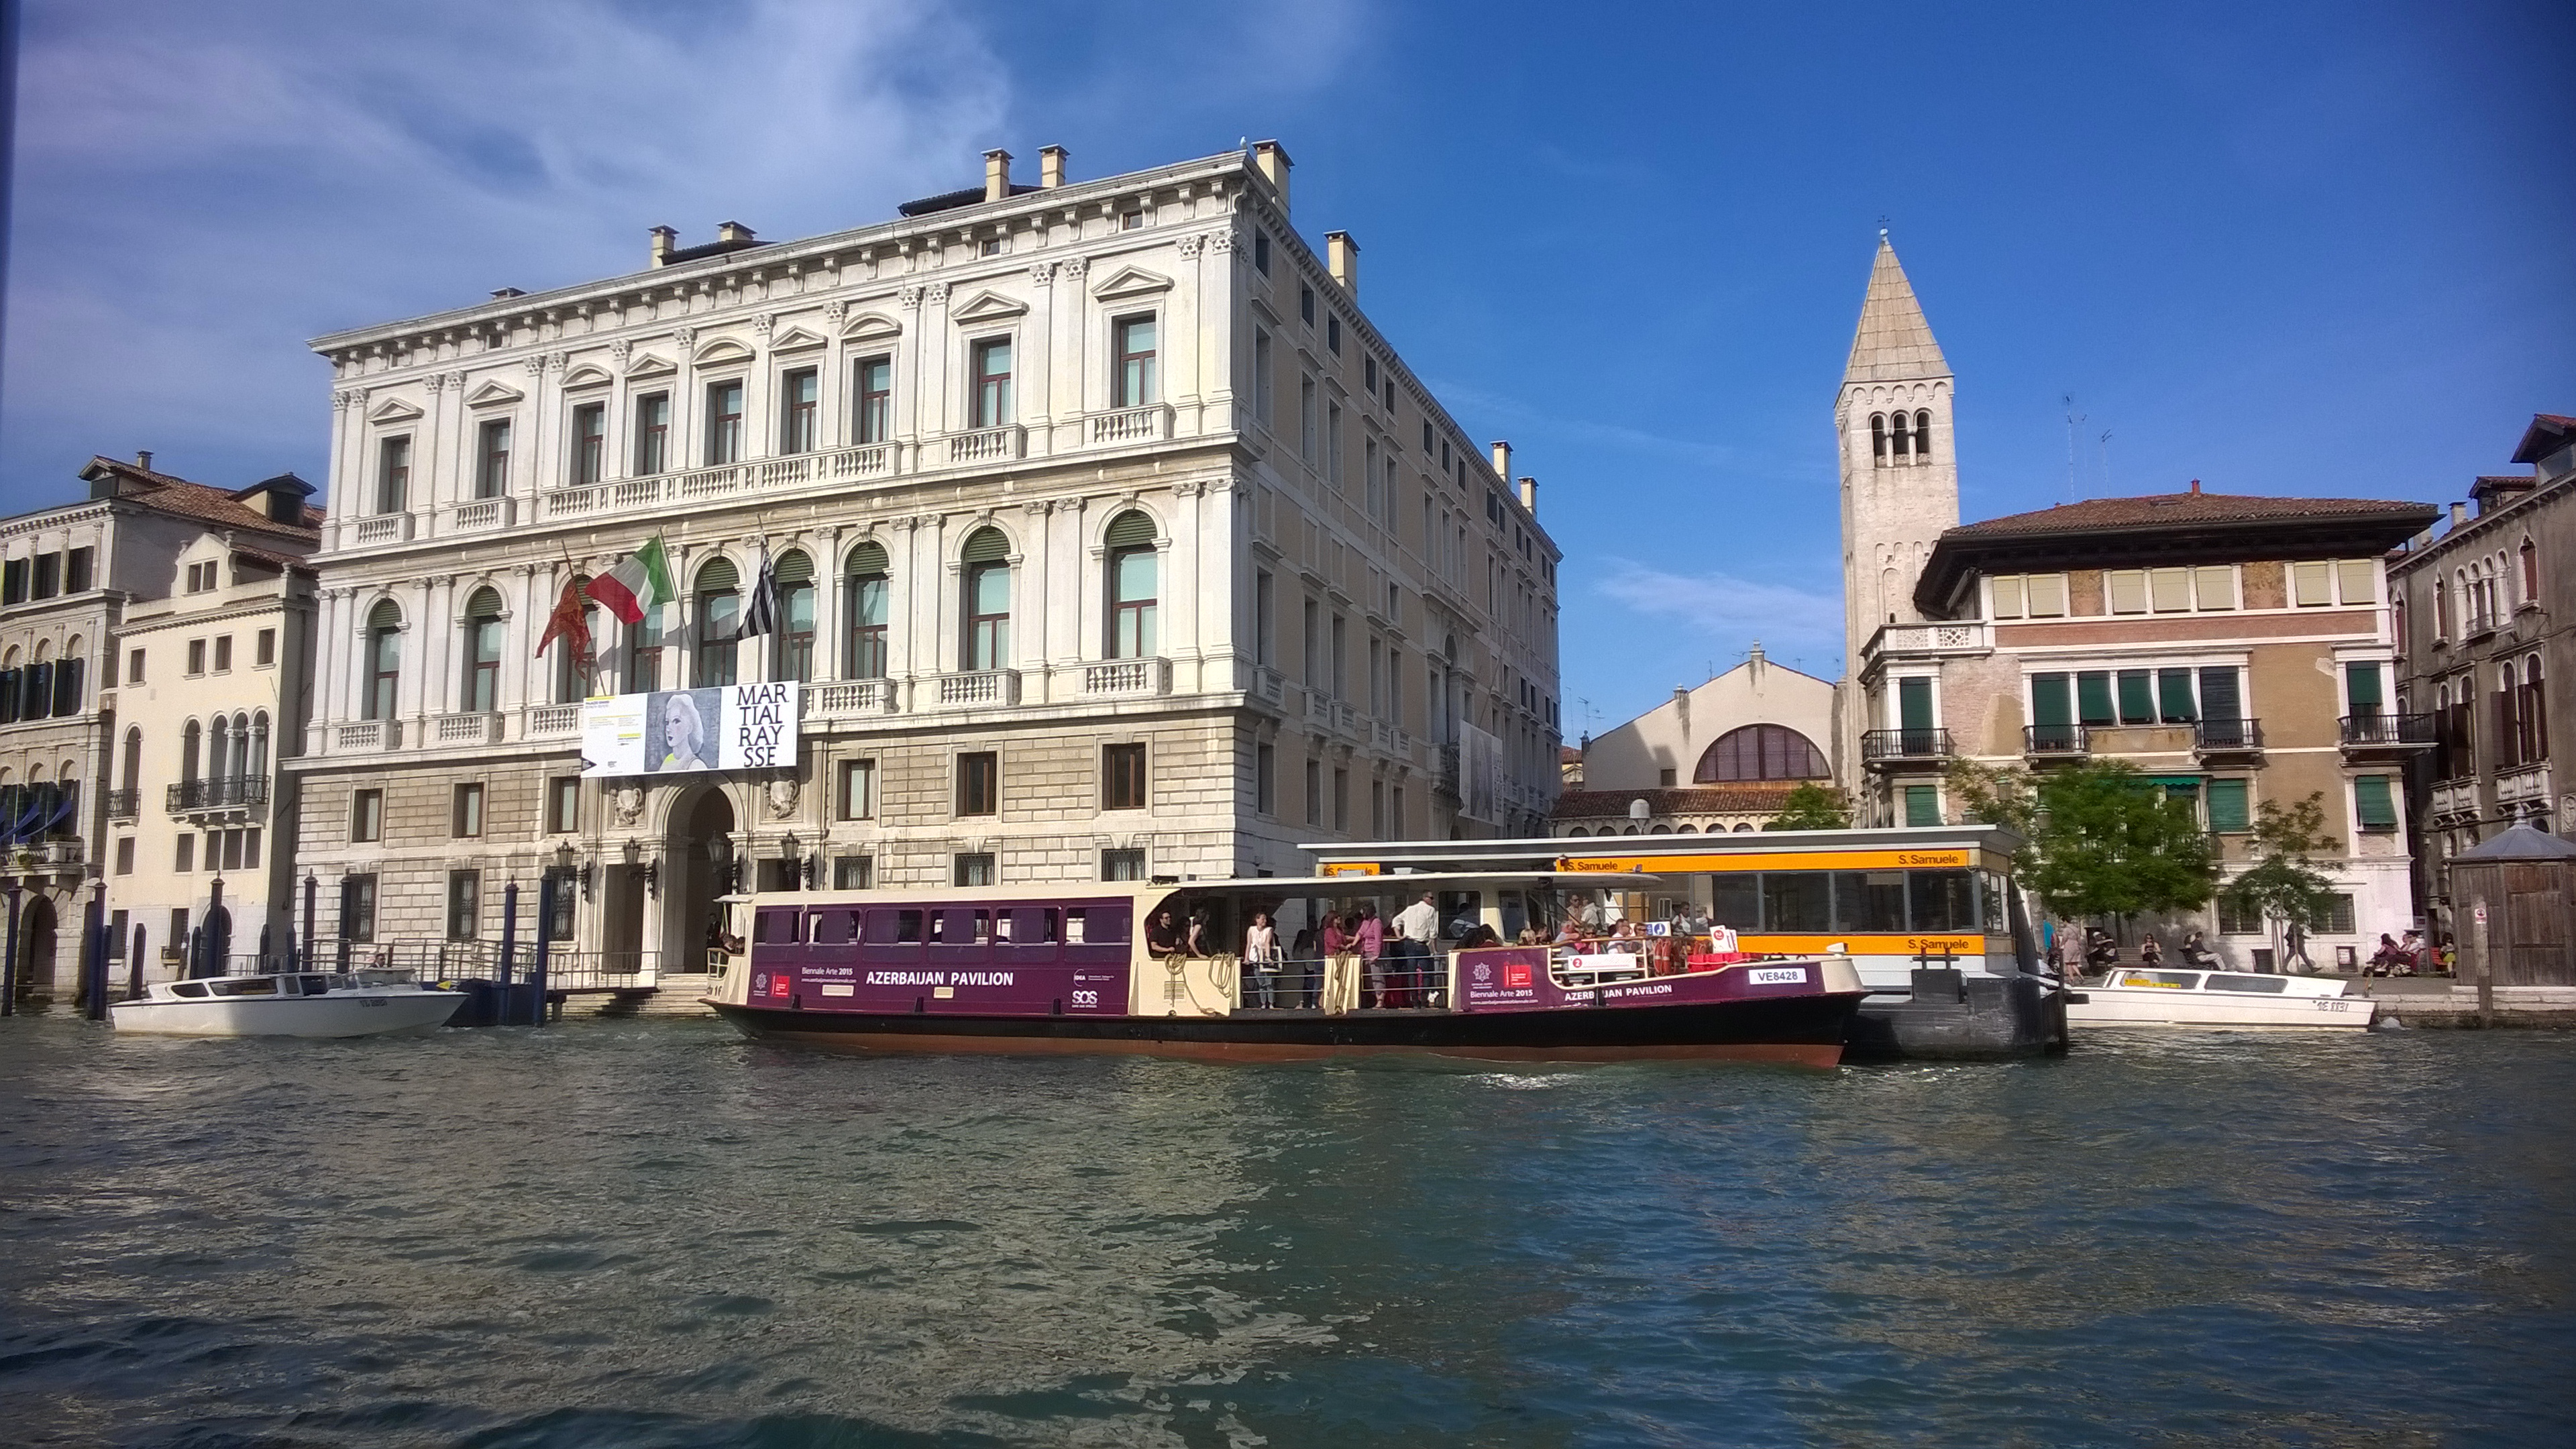 32 Vaporetto in livery for Biennale 2015